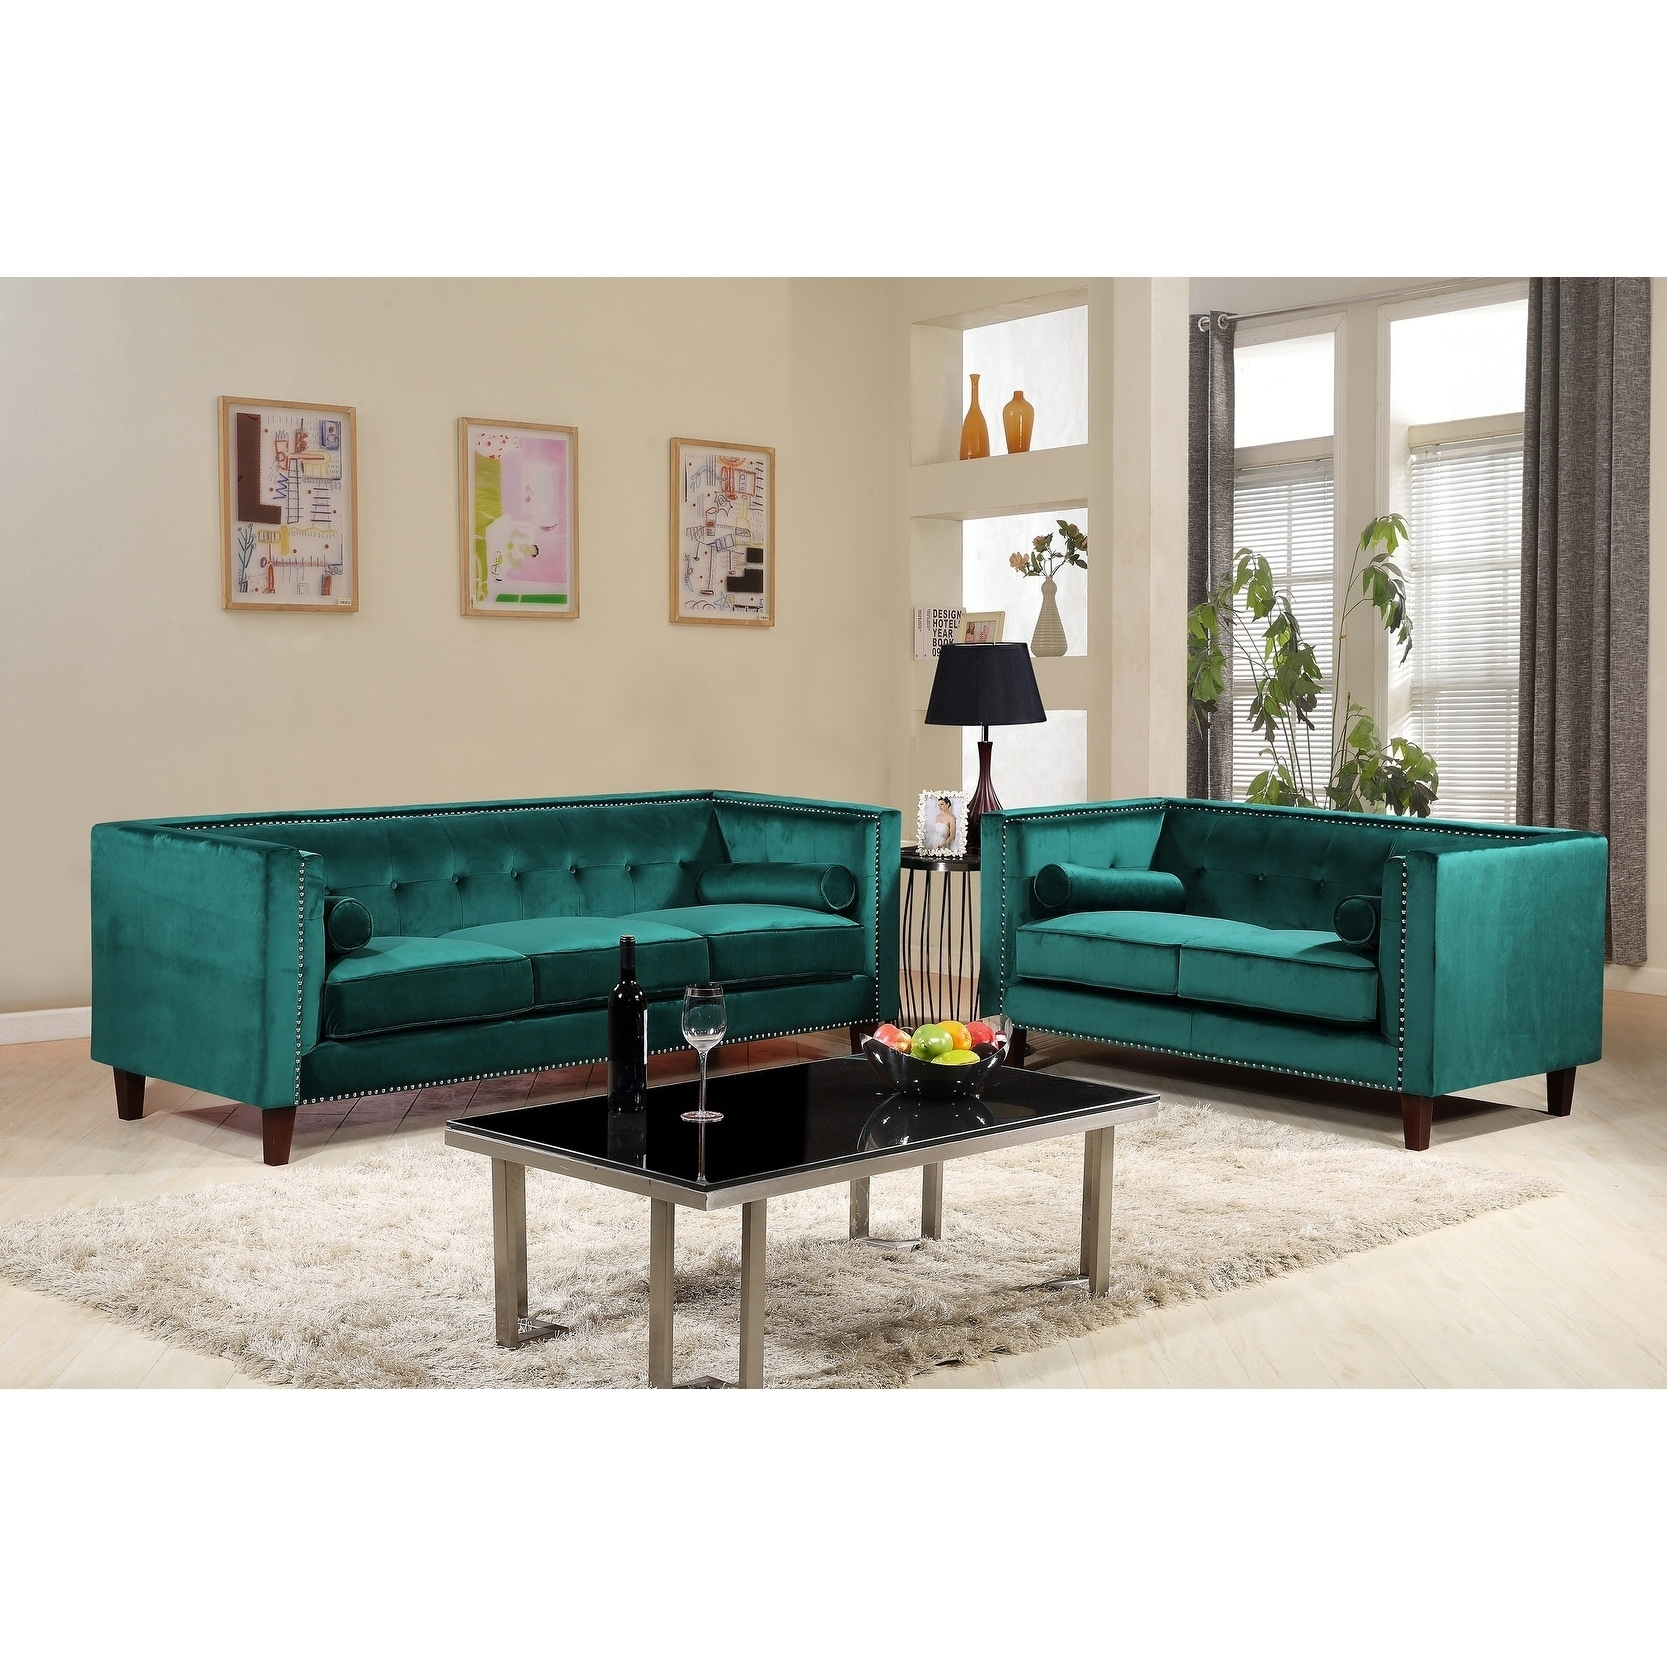 Sofa Sets New Orleans Catosfera Net ~ Sectional Sofa New Orleans